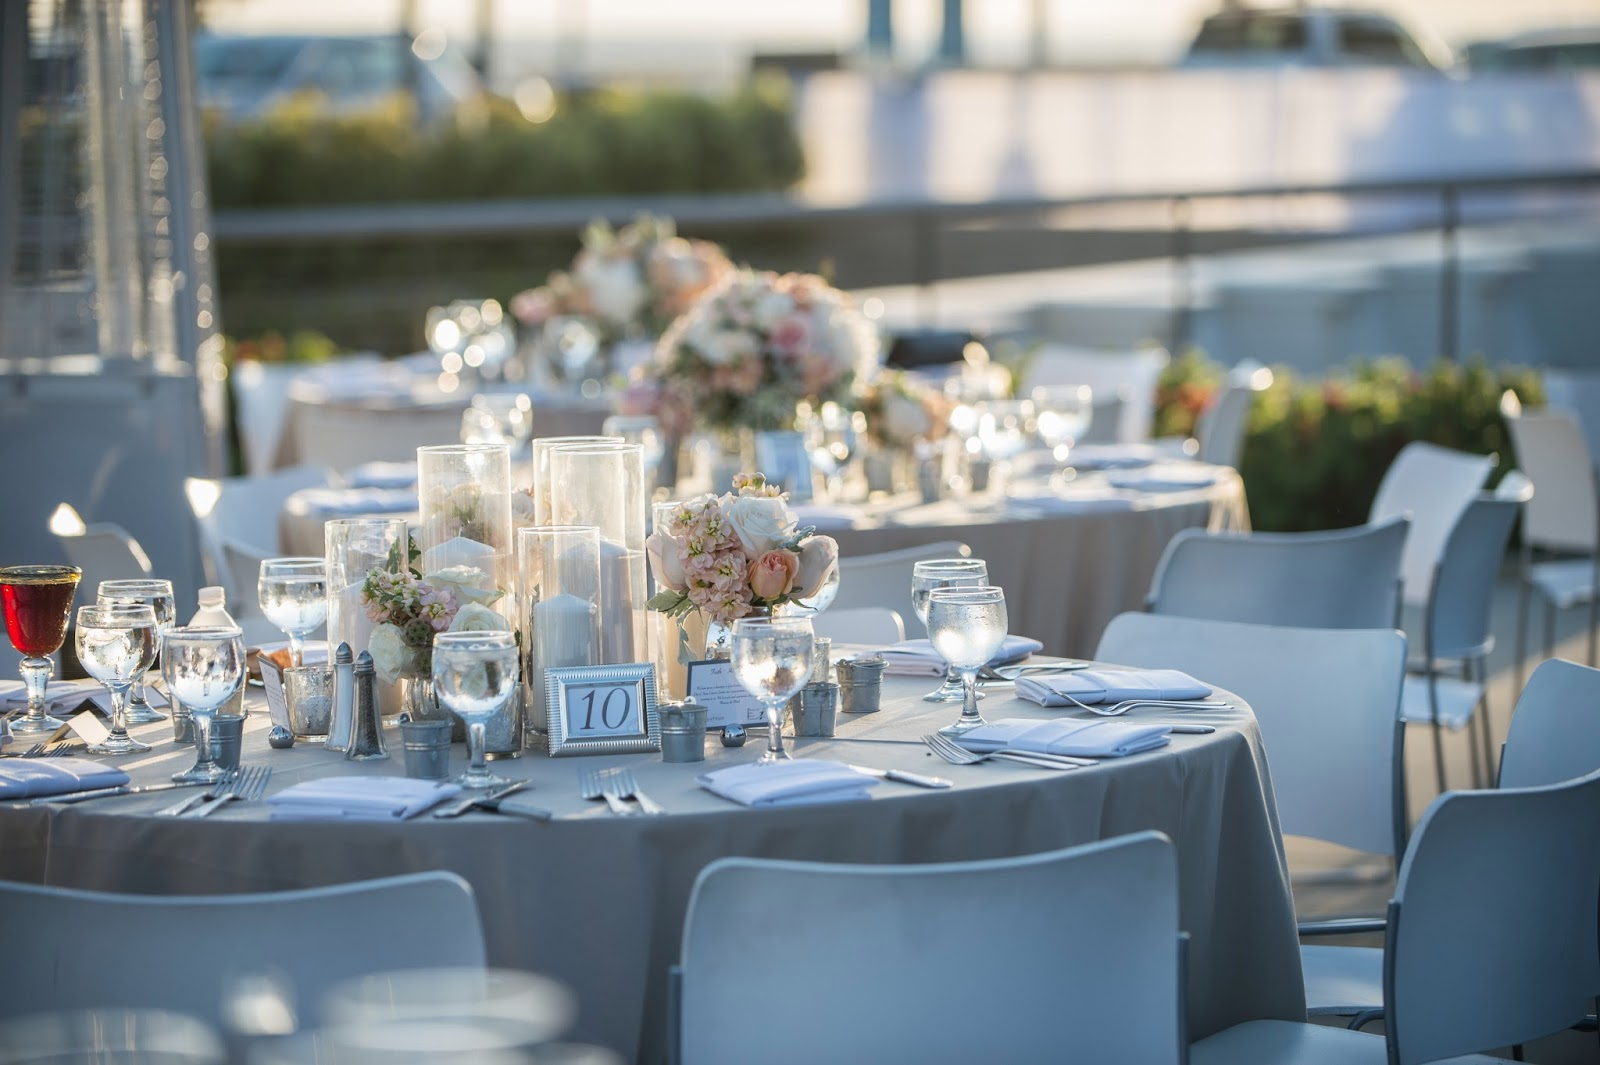 annenberg-community-beach-house-wedding-reception